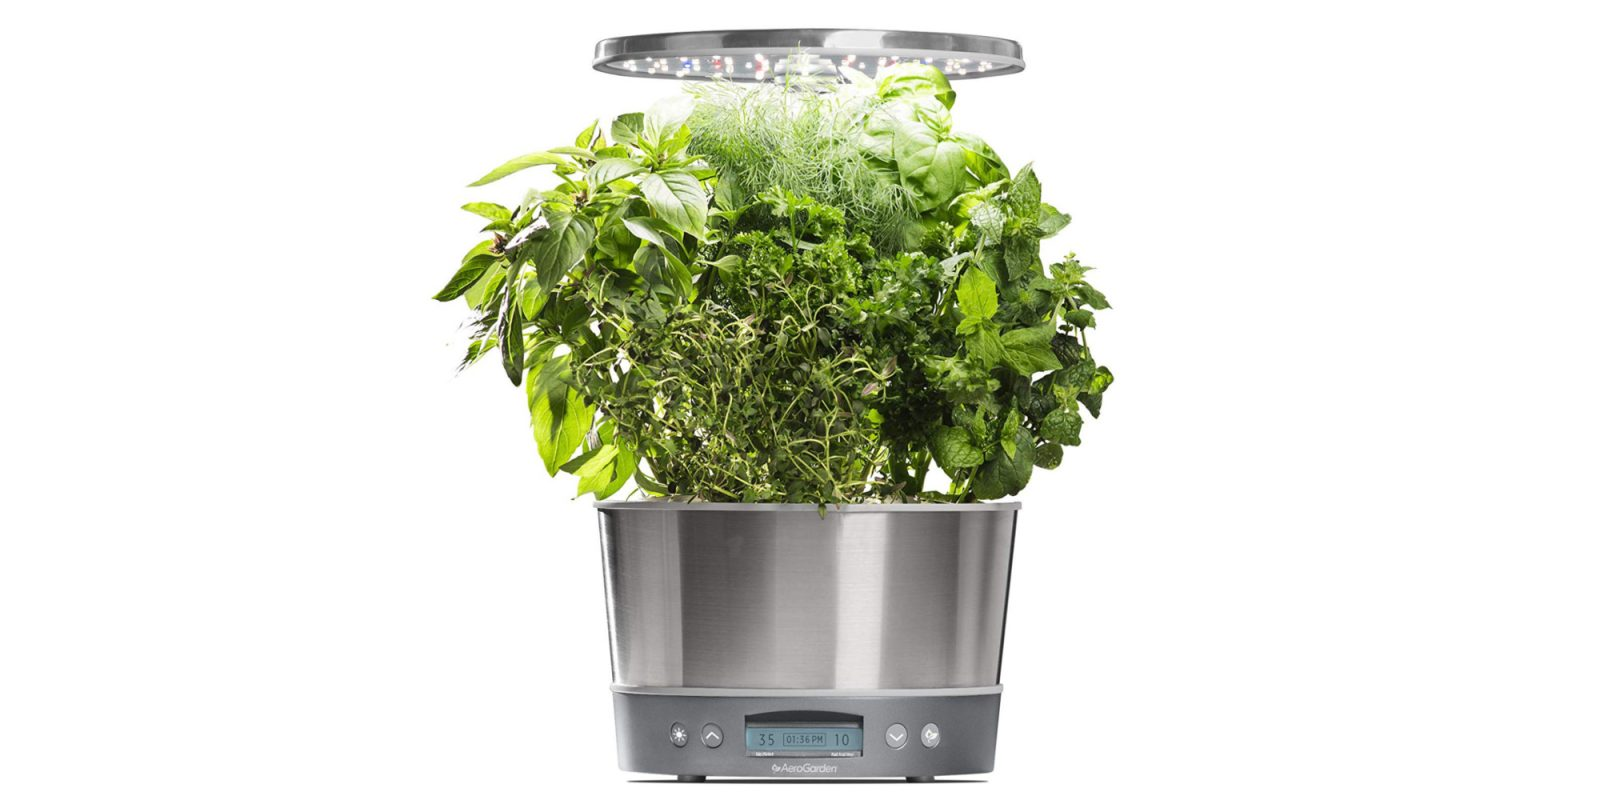 Grow your own herbs inside, AeroGarden Harvest Elite 360 now $80 (Reg. $130+)